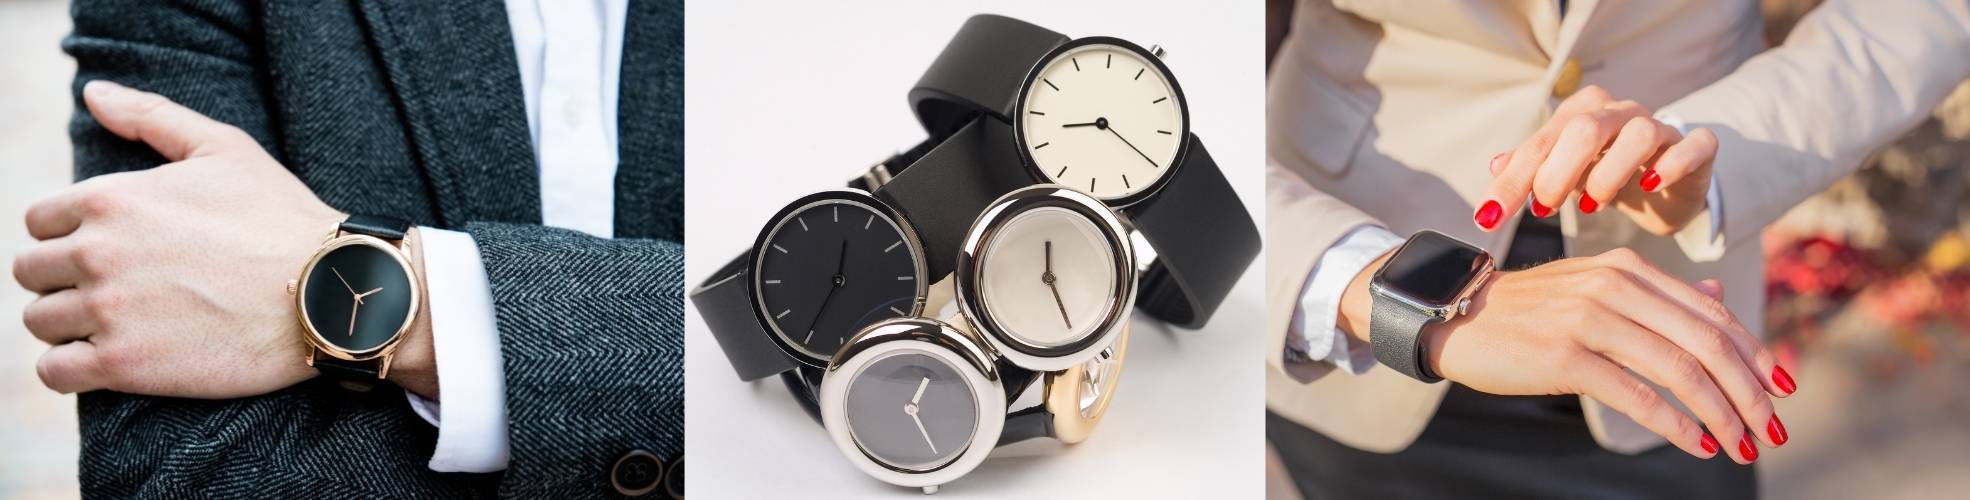 Browse our range of wholesale watches for children, ladies and men in a variety of styles, colours and designs.